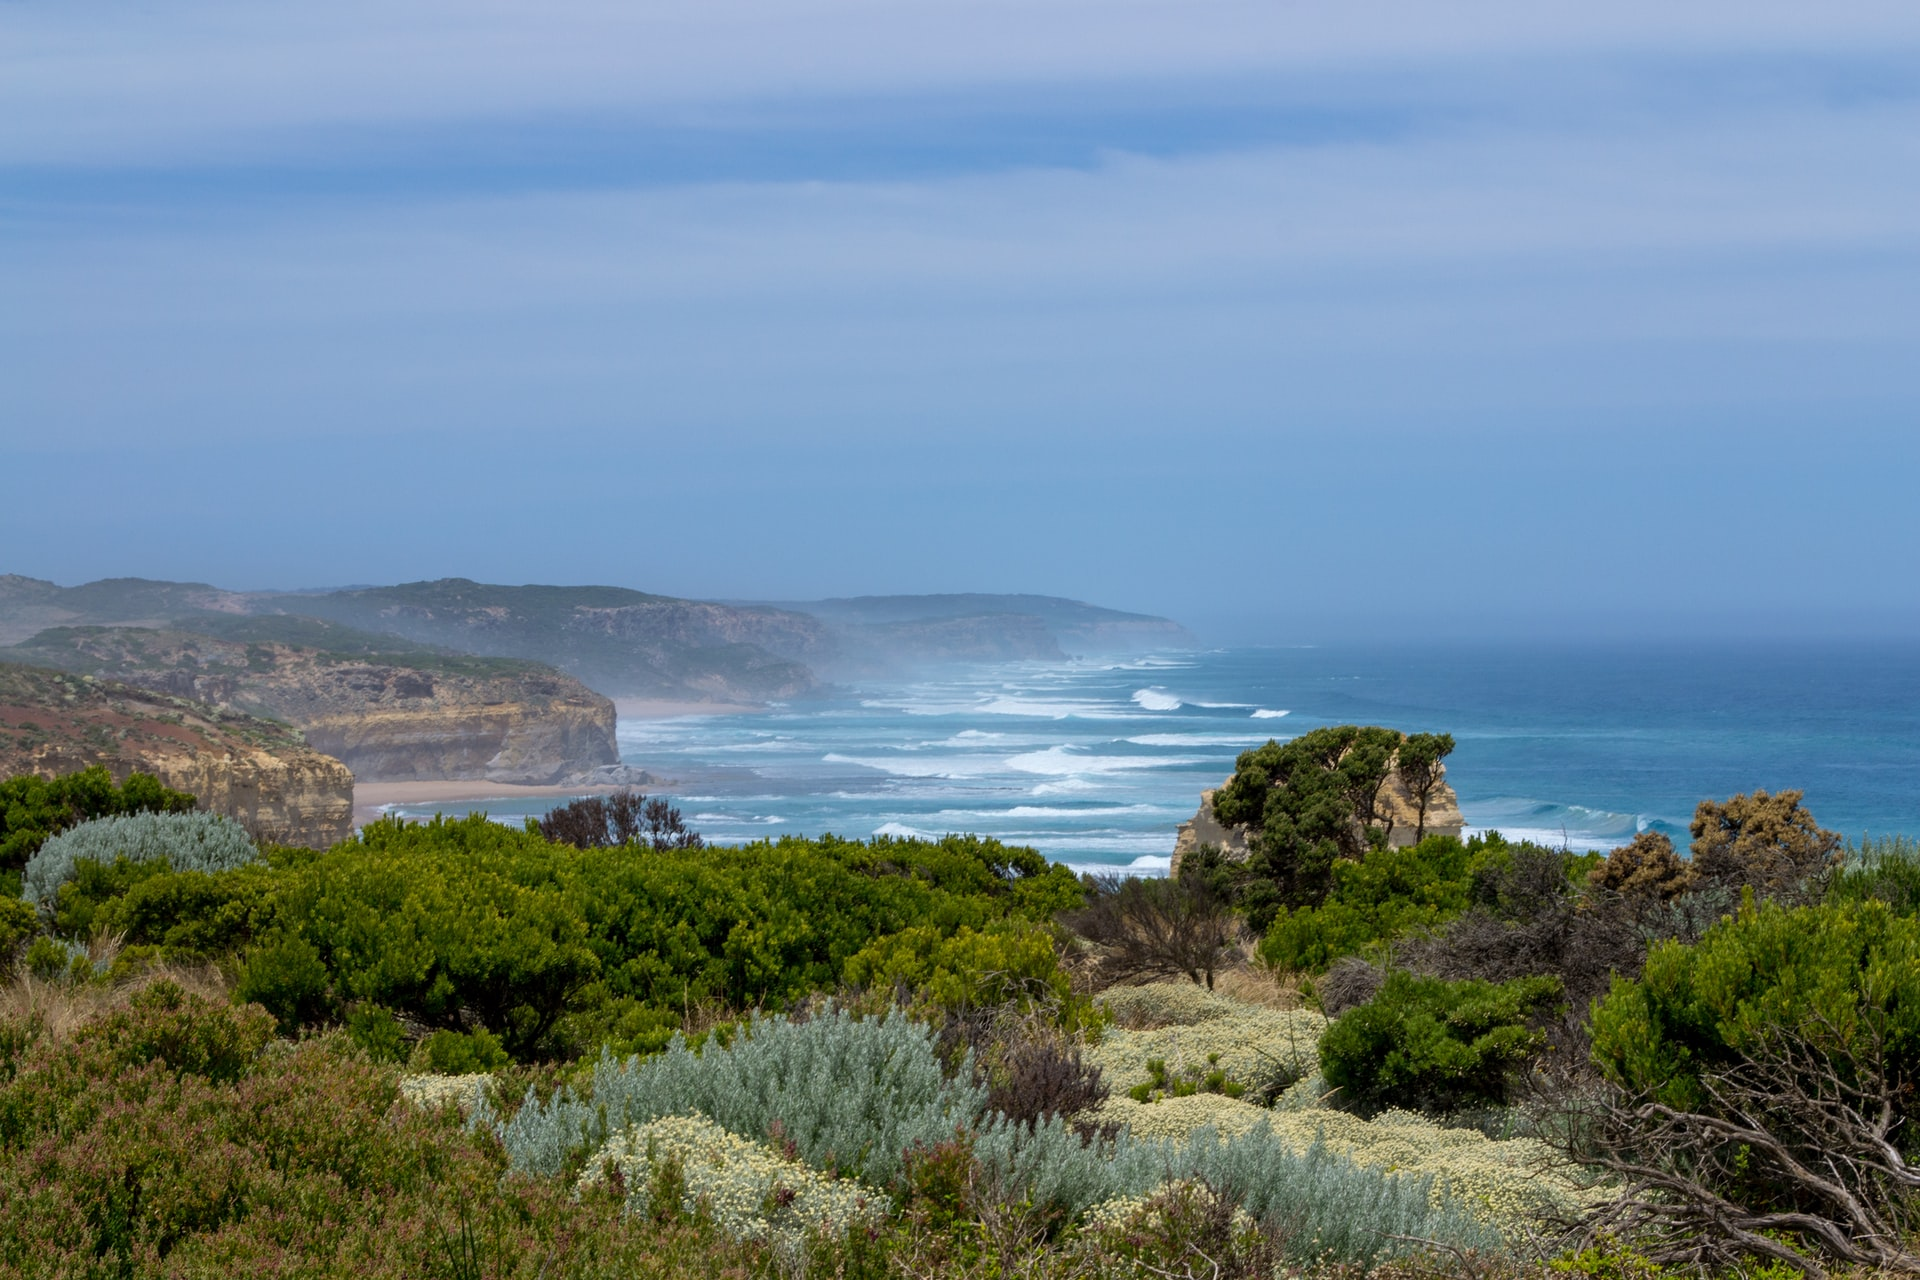 View of the cliffs at the Great Ocean Road